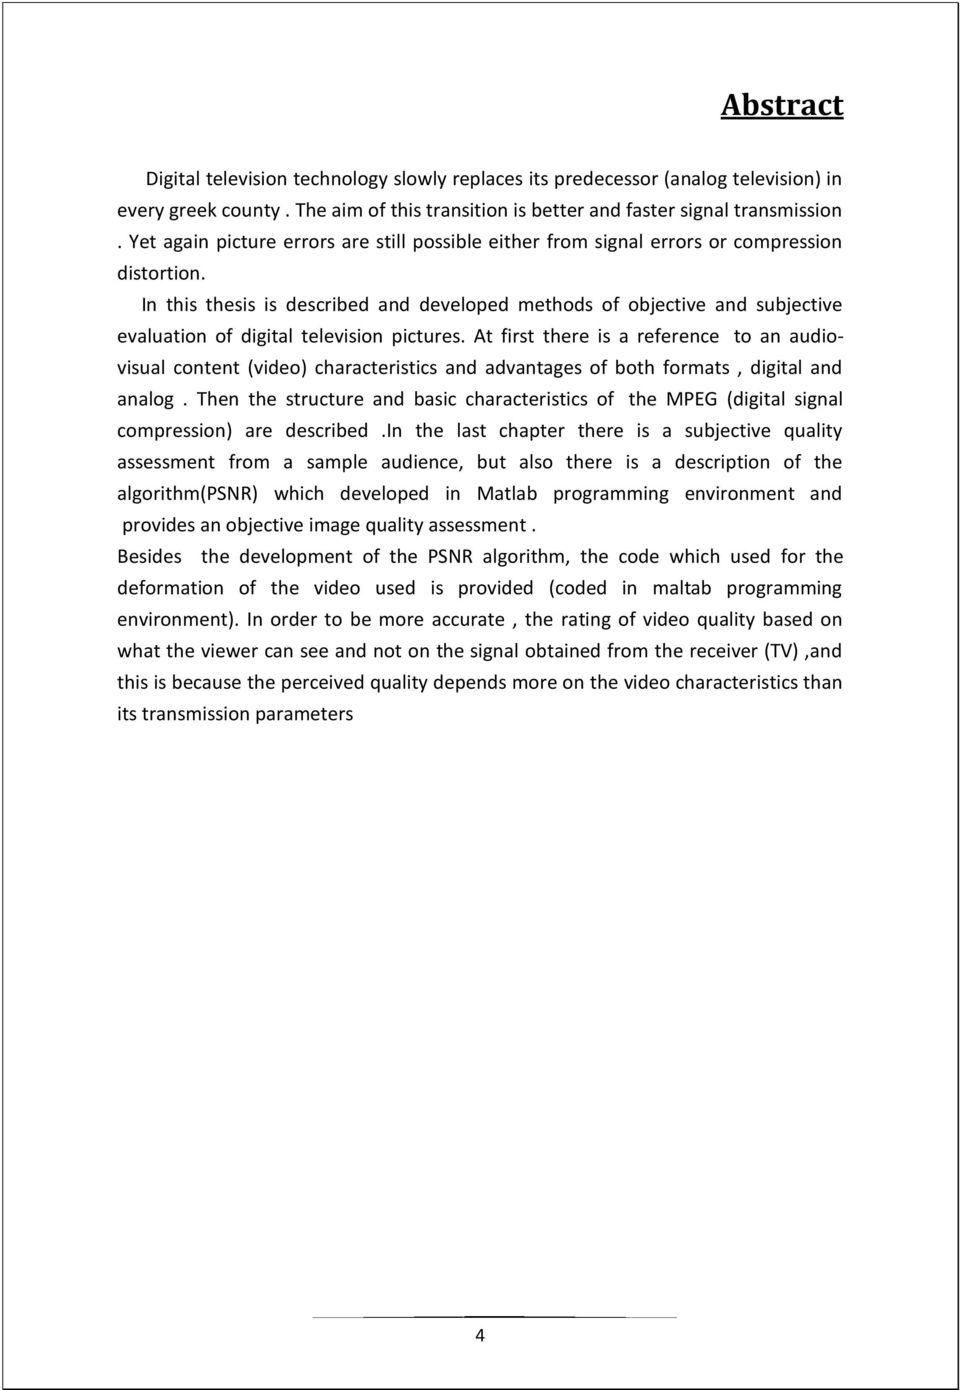 In this thesis is described and developed methods of objective and subjective evaluation of digital television pictures.